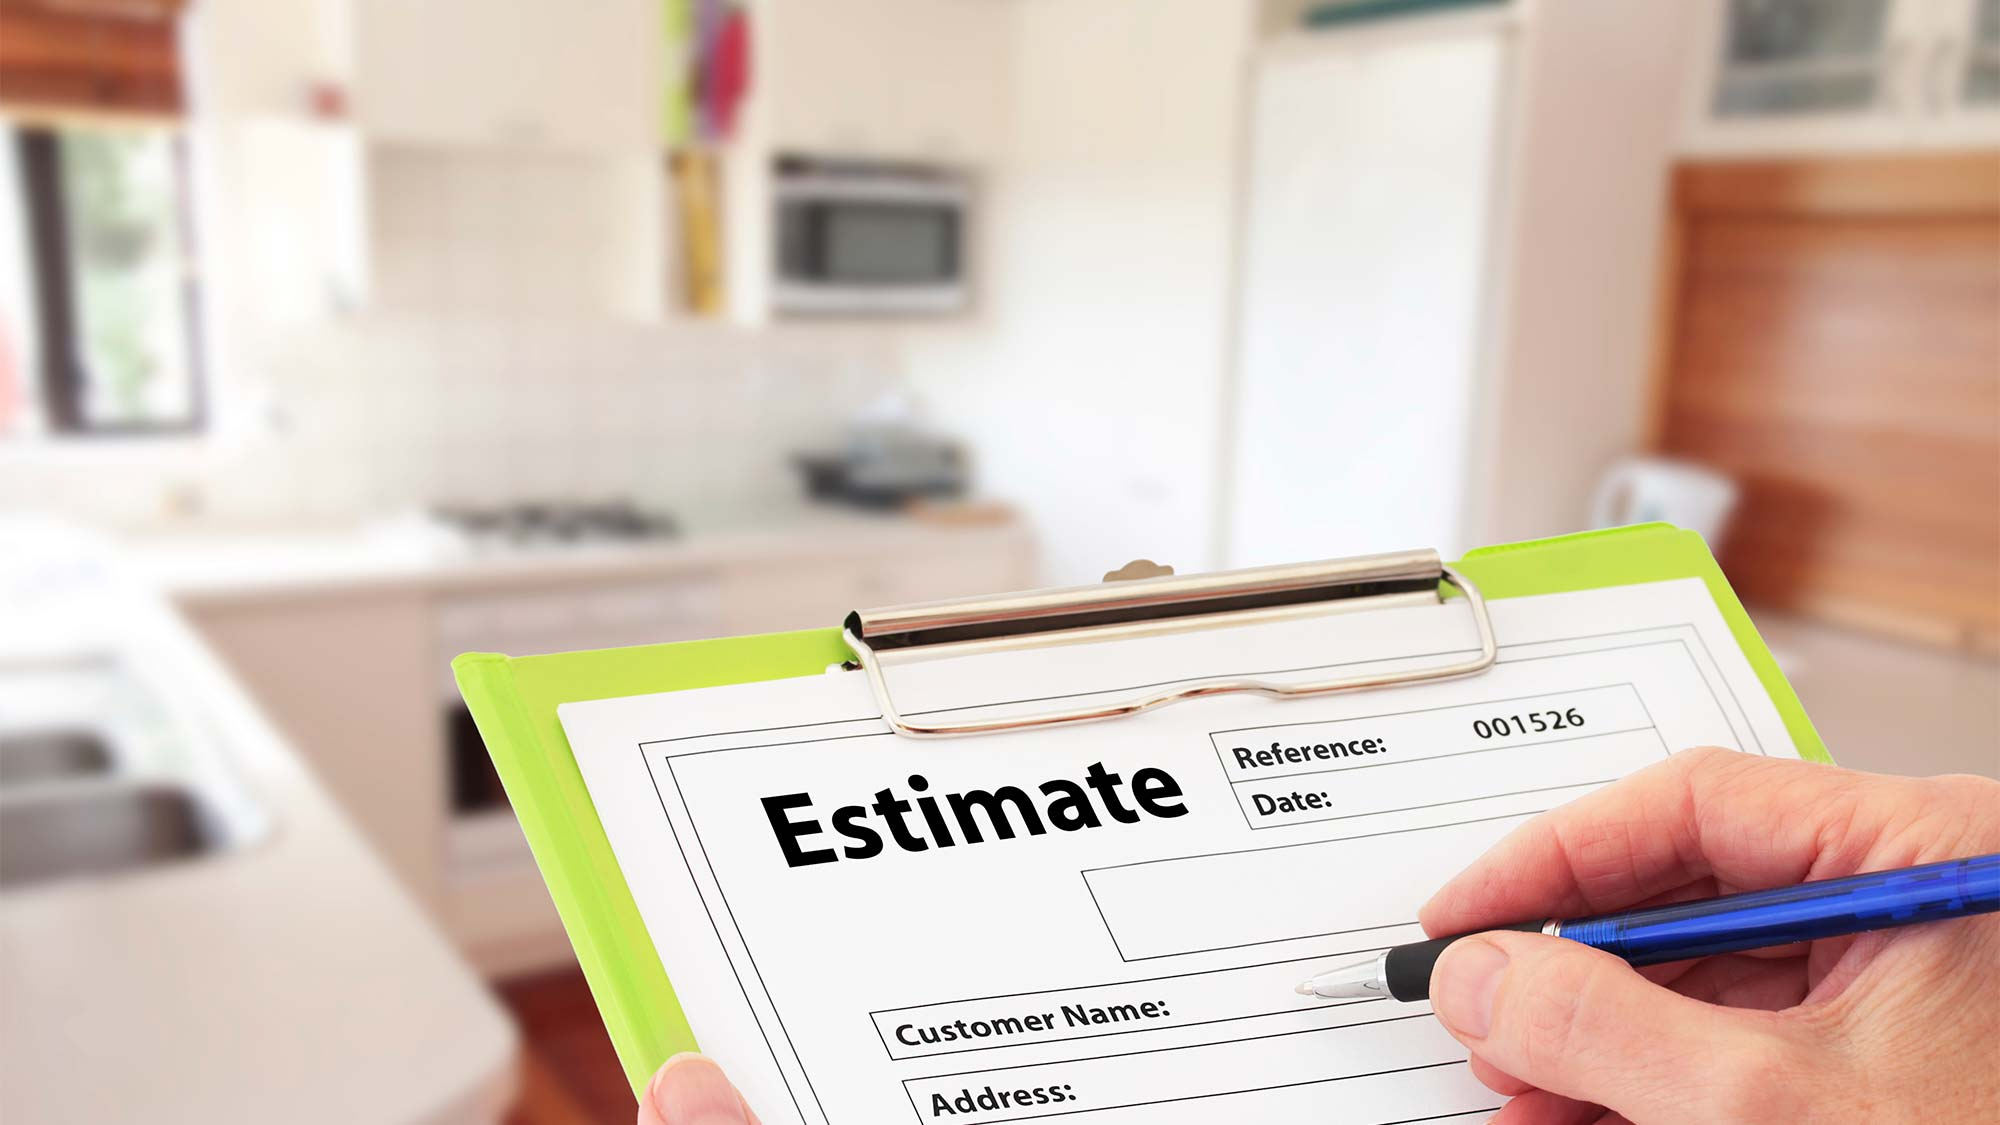 How Much Does a Kitchen Remodel Cost? Enough to Make You Lose Your Lunch